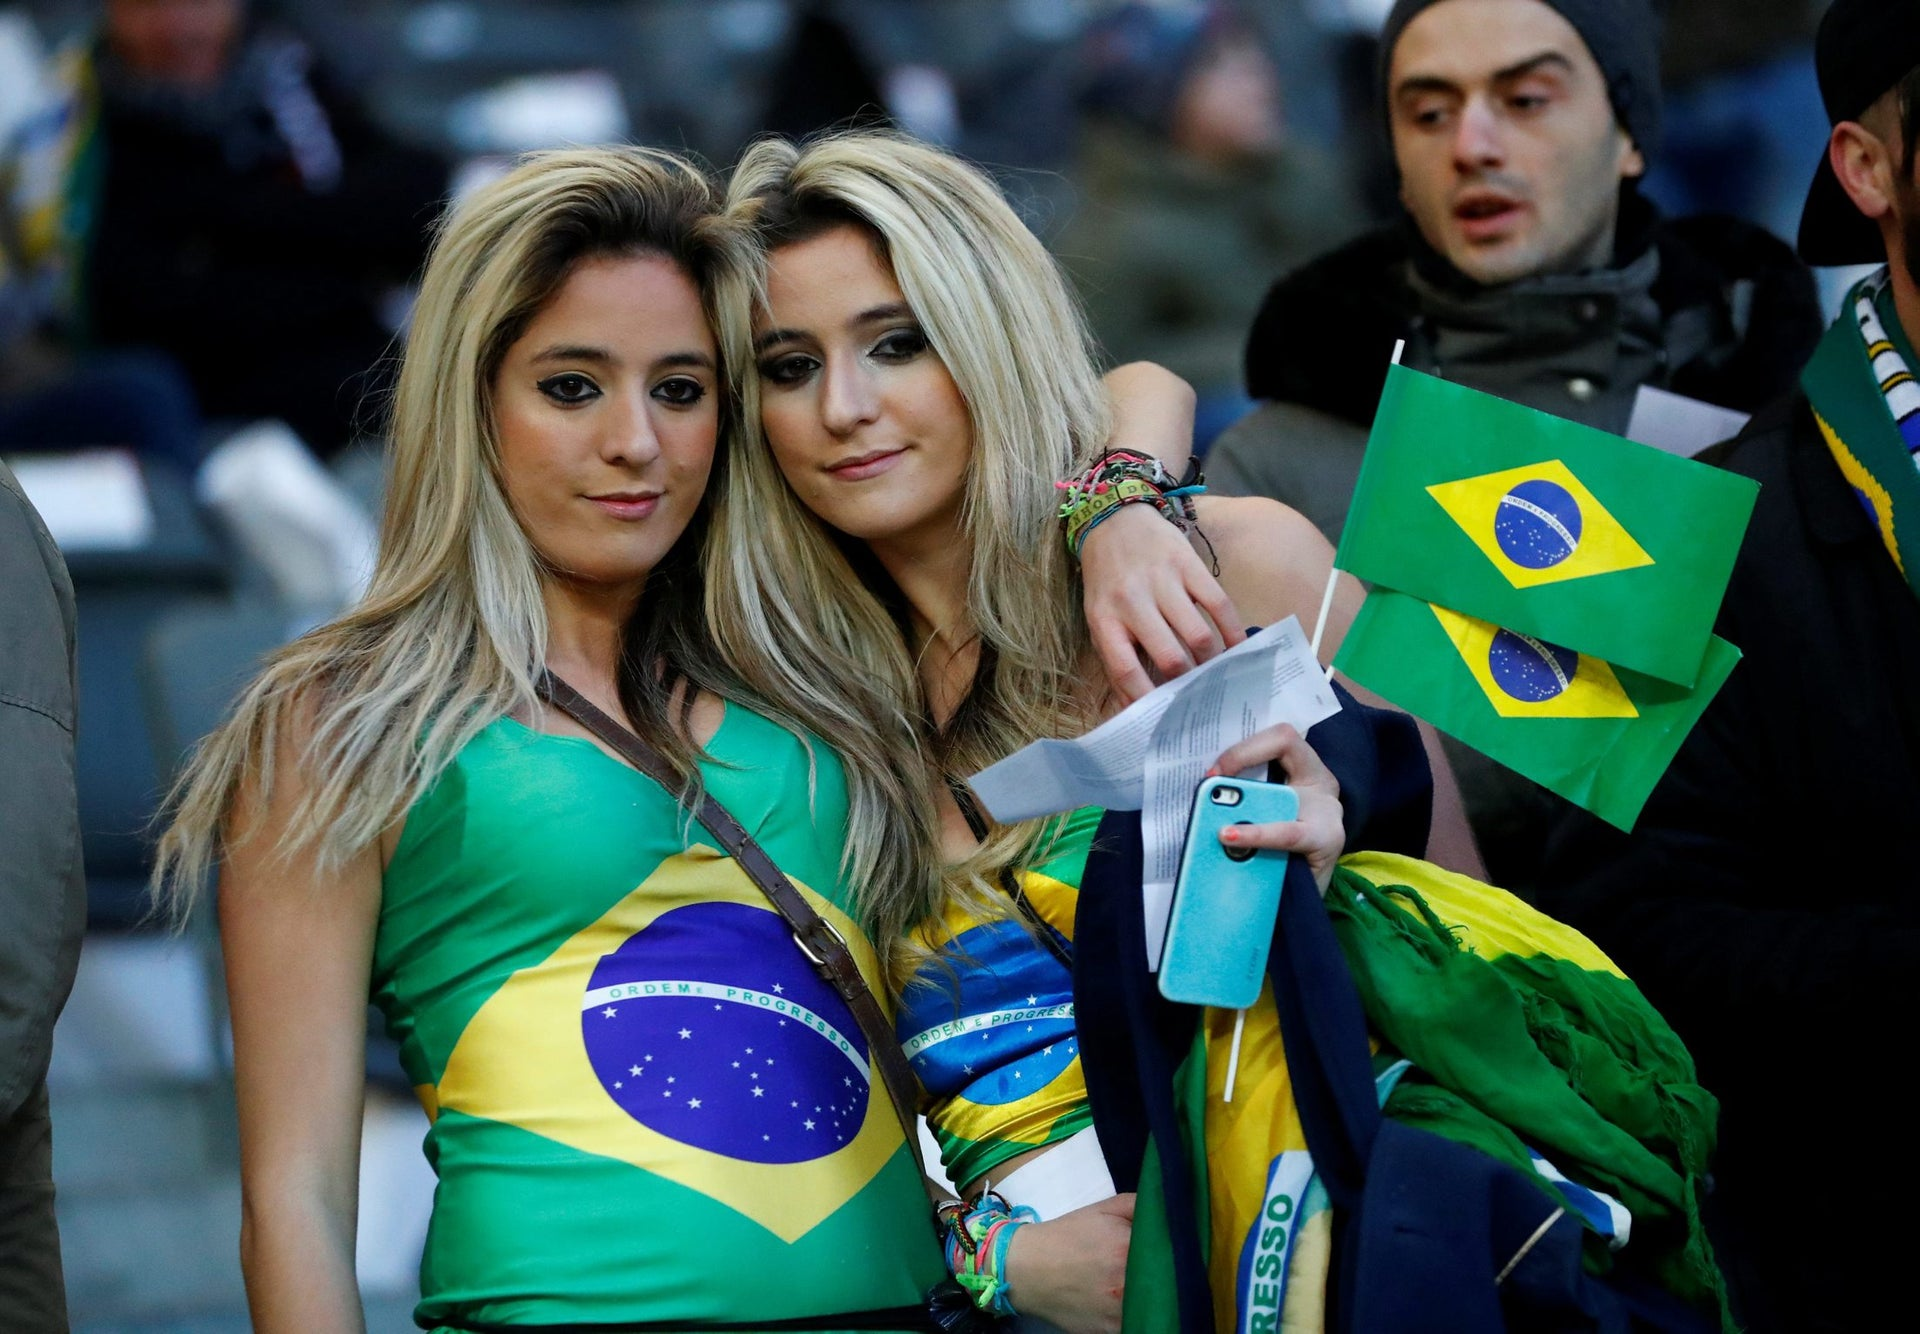 What will cameramen cut away to during Brazil games in the #MeToo era?